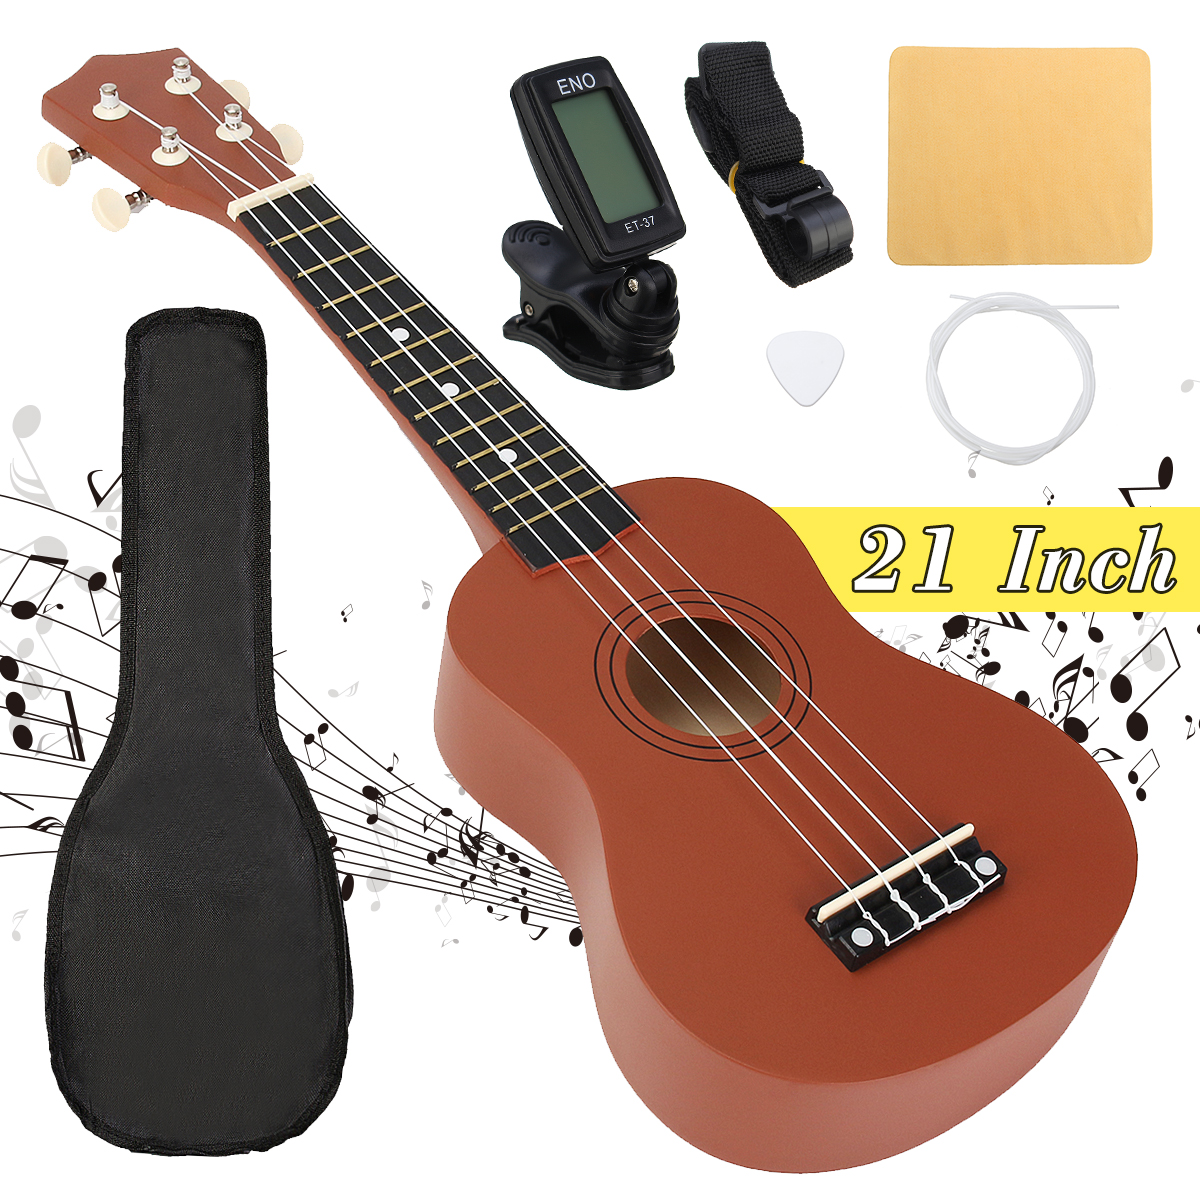 buy 21 inch soprano ukulele uke 4 strings hawaii bass guitar guitarra musical. Black Bedroom Furniture Sets. Home Design Ideas